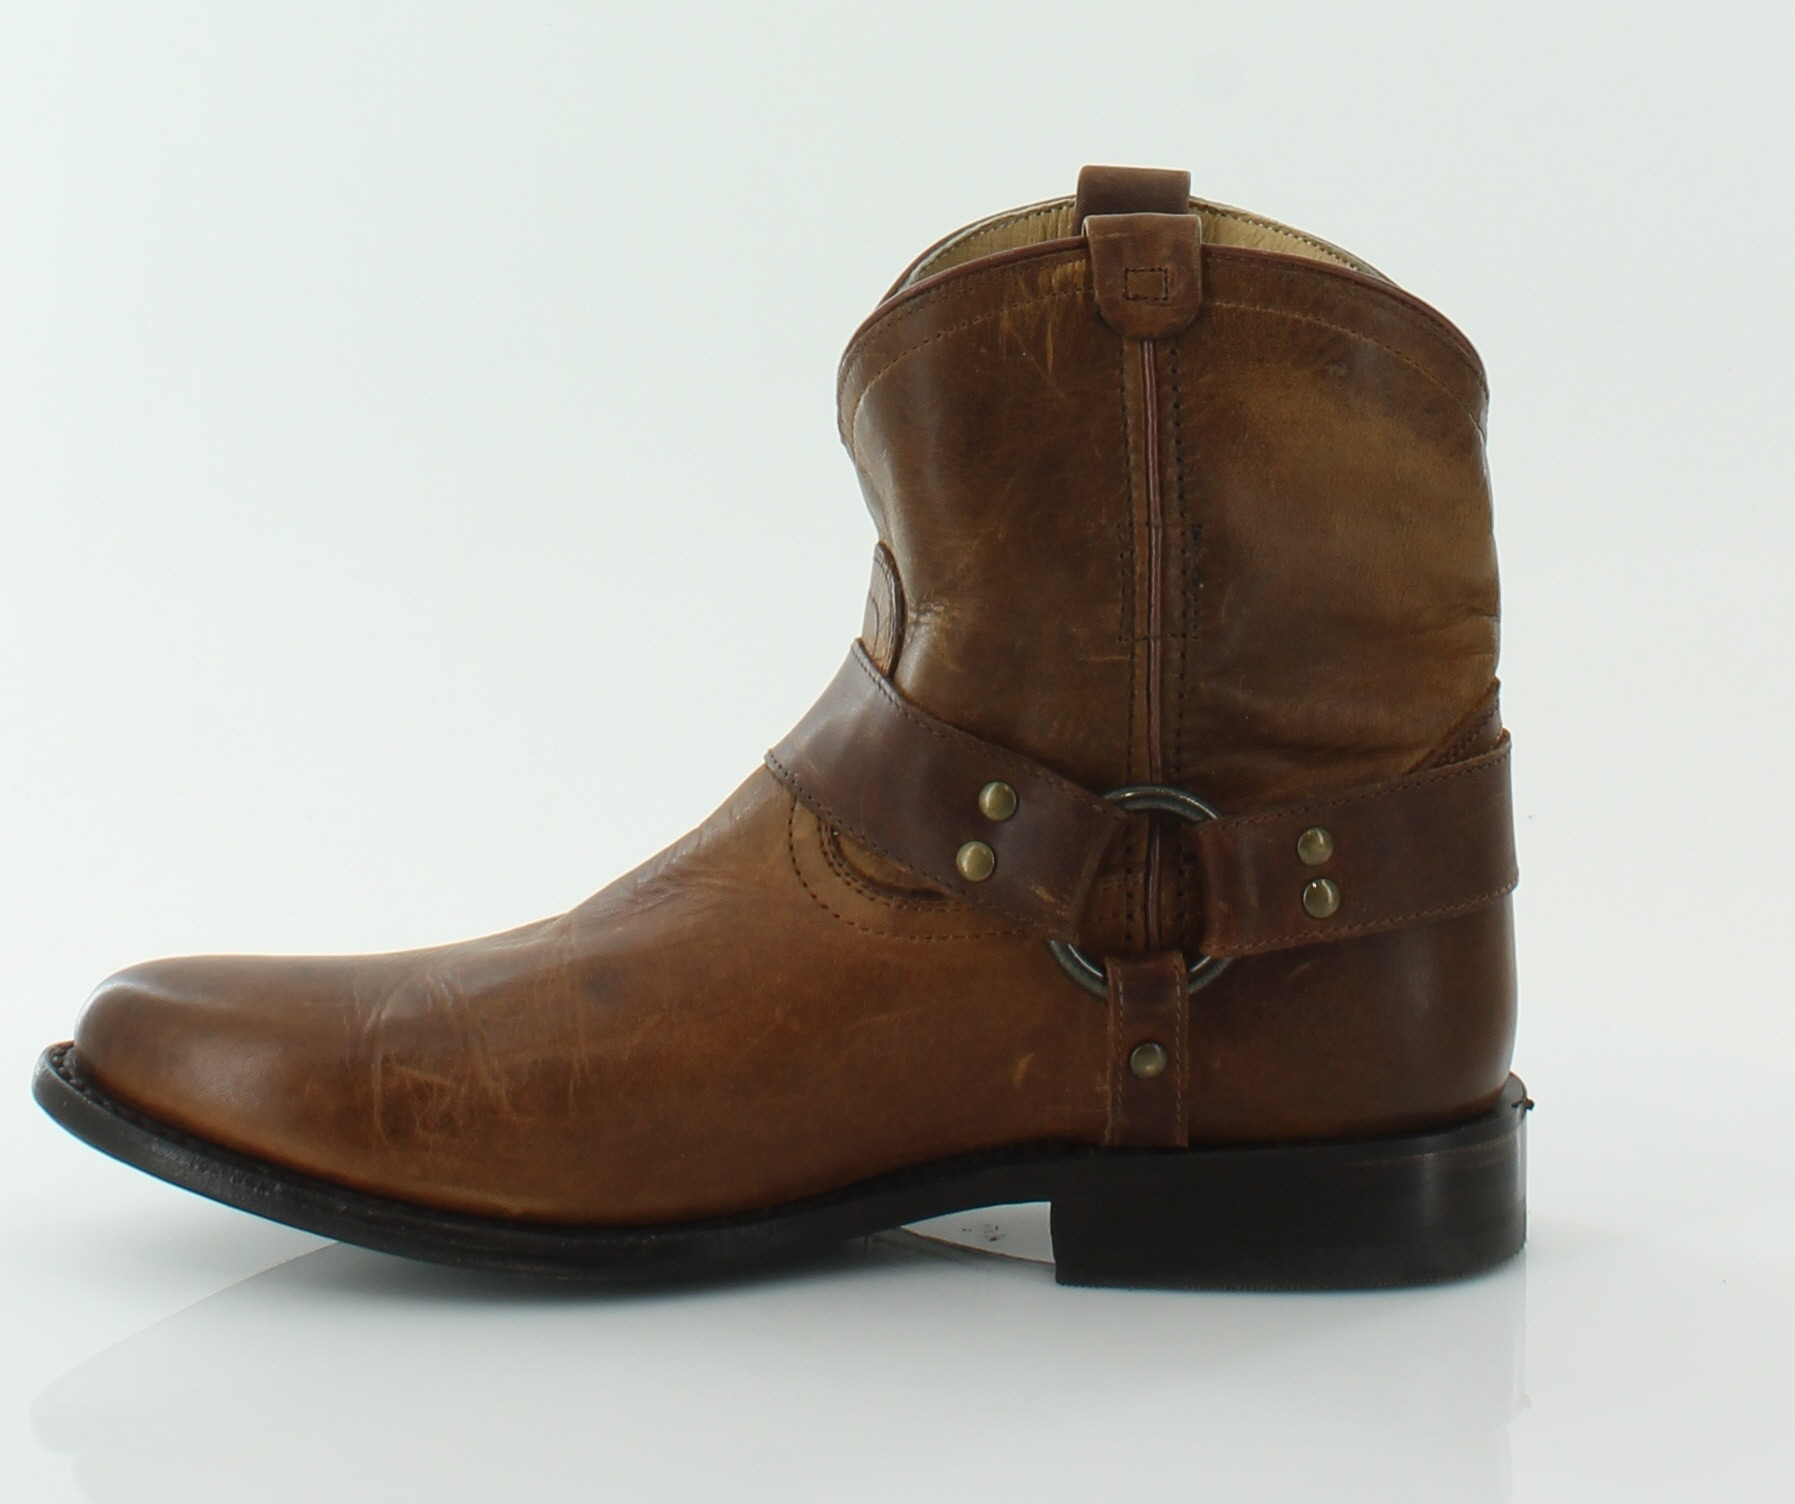 frye new wyatt brown womens shoes size 8 5 b boots msrp